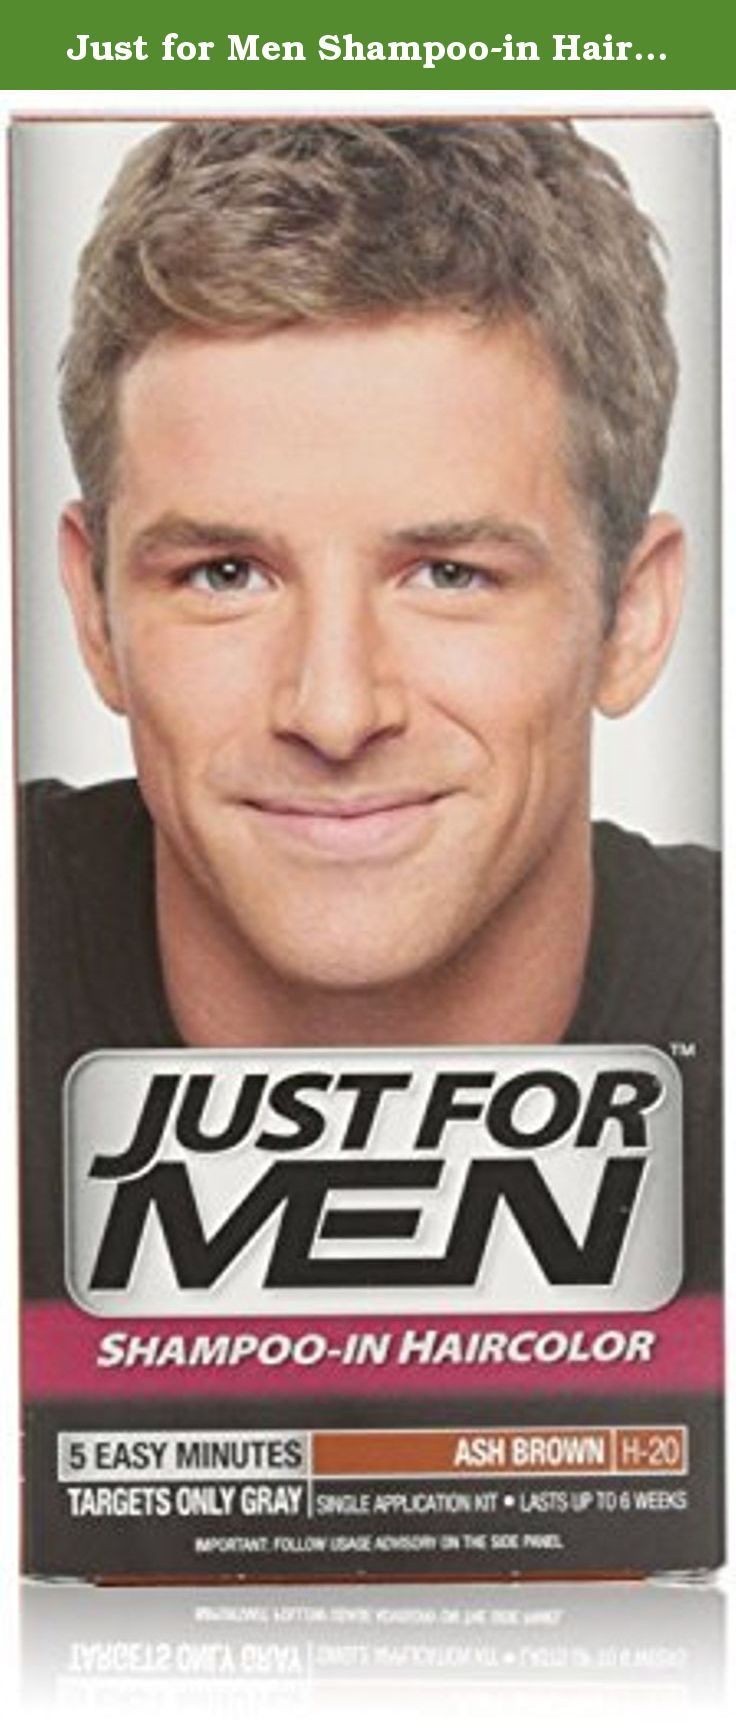 Just For Men Shampoo In Hair Color Ash Brown H 20 1 Application